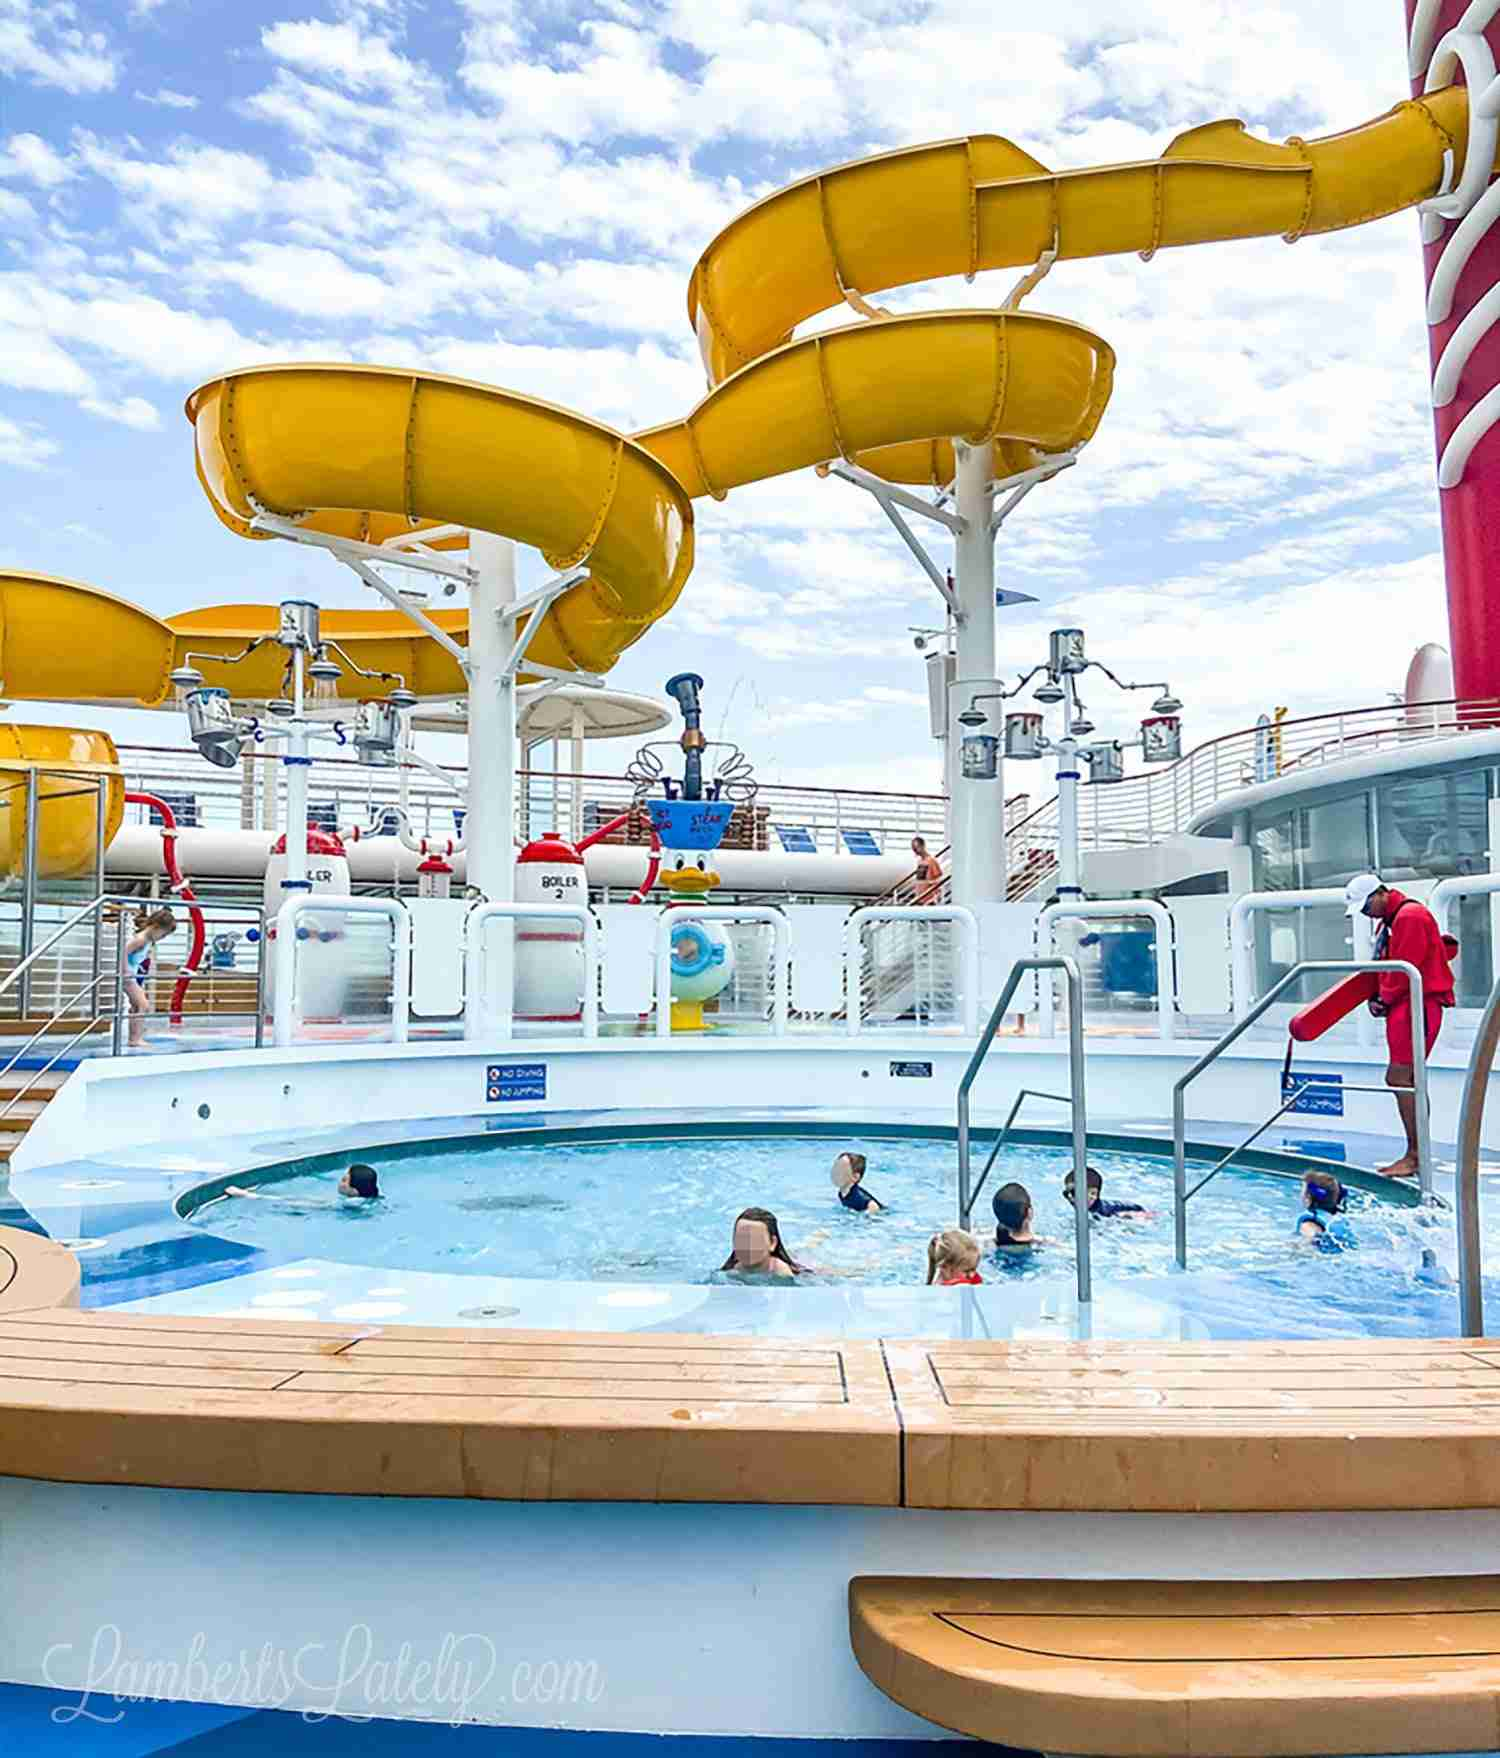 This list of Disney Cruise hacks has tips and tricks for saving money, how to have fun with kids, great (hidden) foods to try, and how to navigate a Disney cruise for a first time traveler.